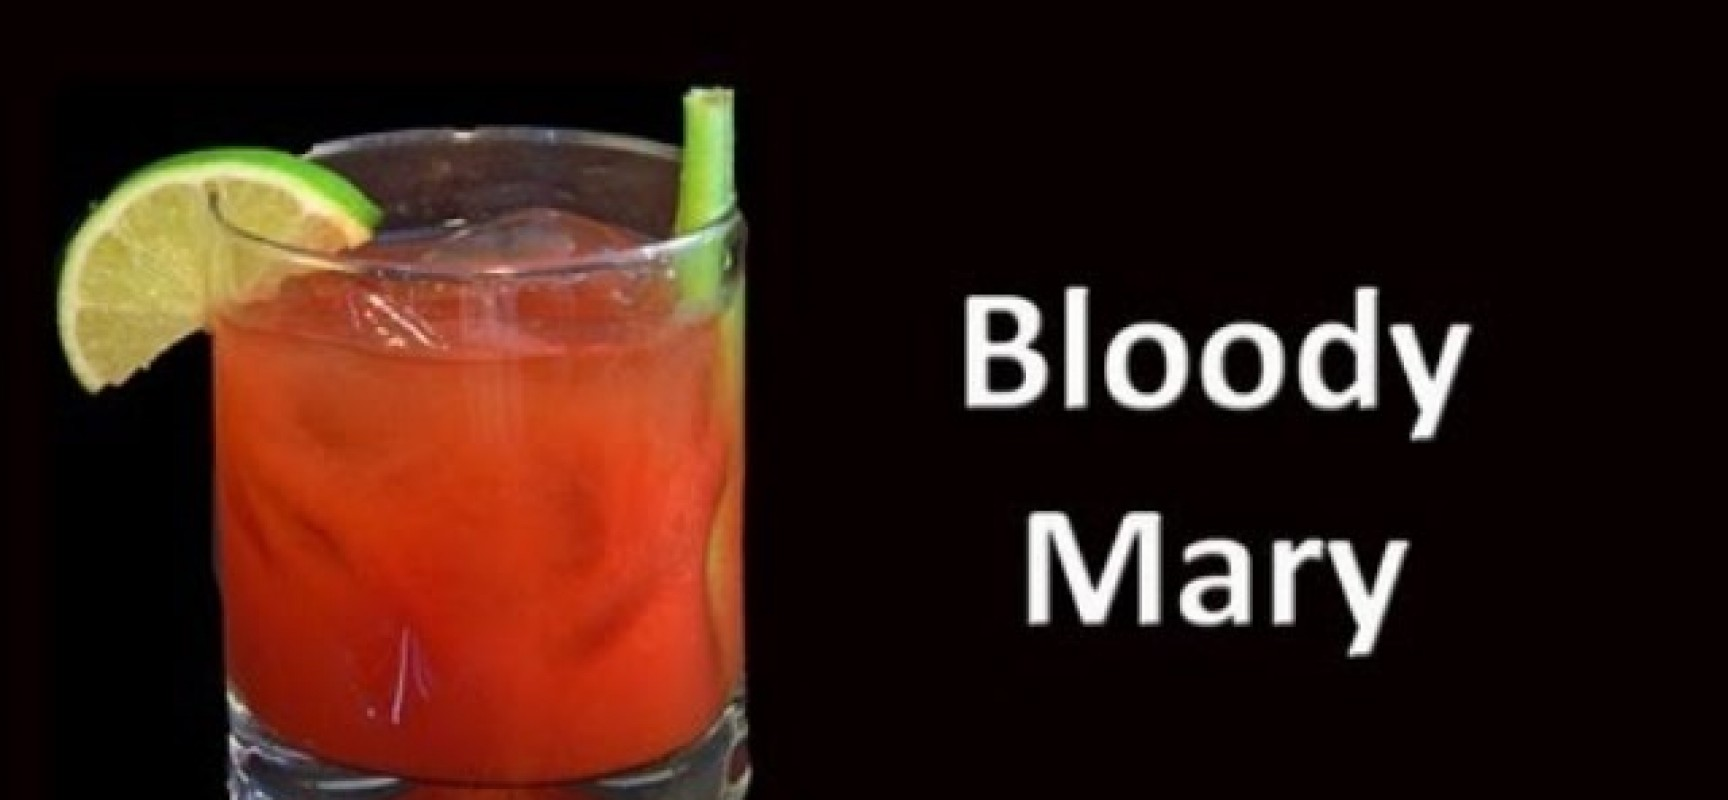 Bloody mary one of the most popular cocktails crave bits for Great alcoholic mixed drinks